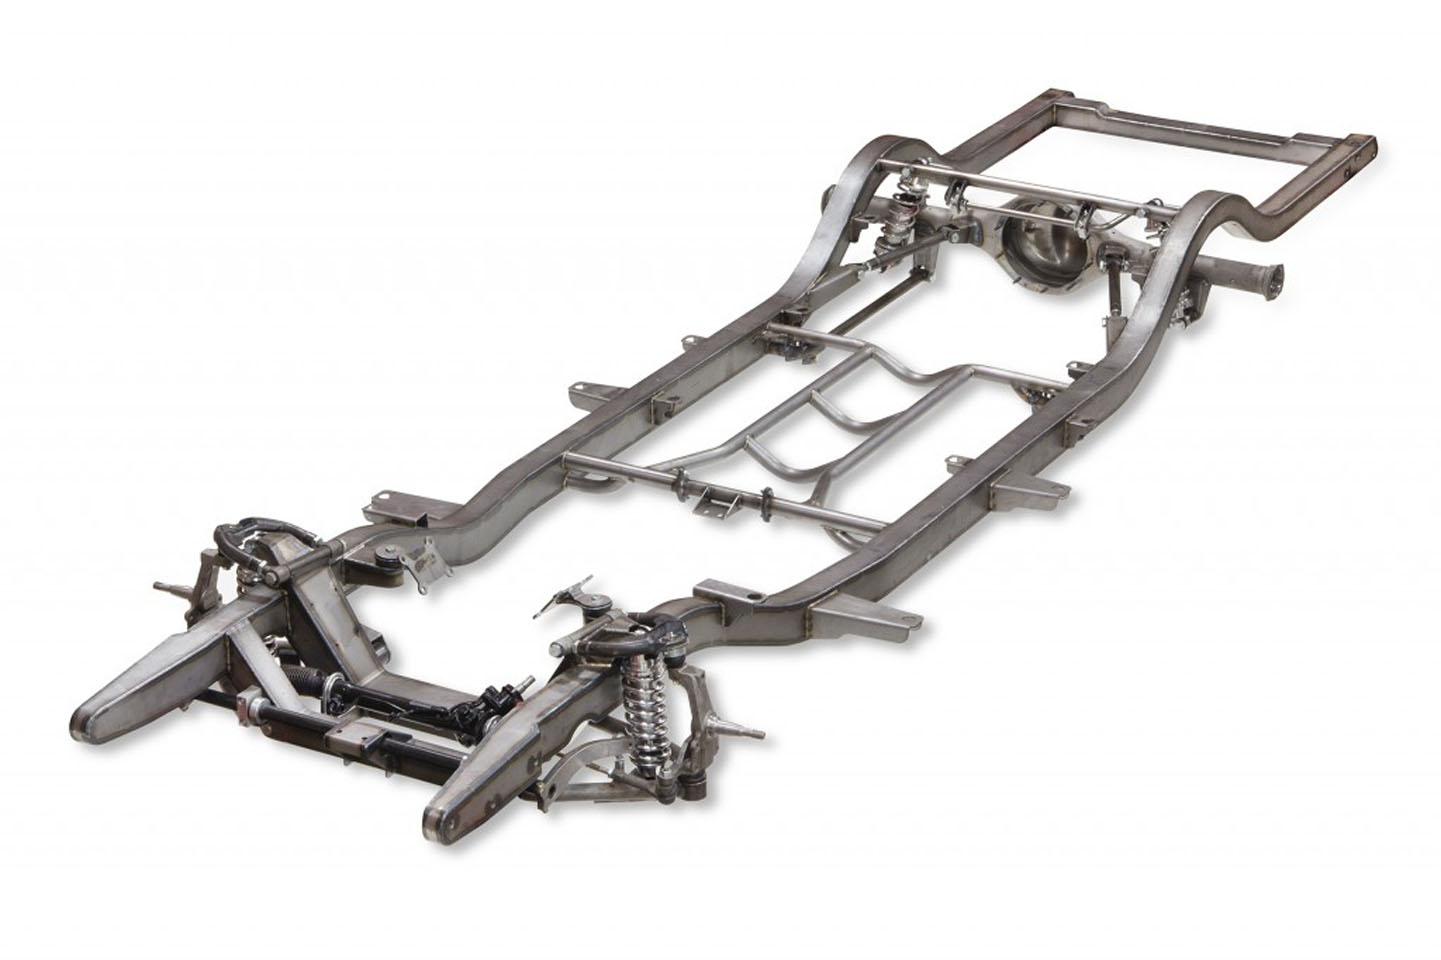 Heidts Tri Five Pro G Chevy Frame Is A One Stop Solution